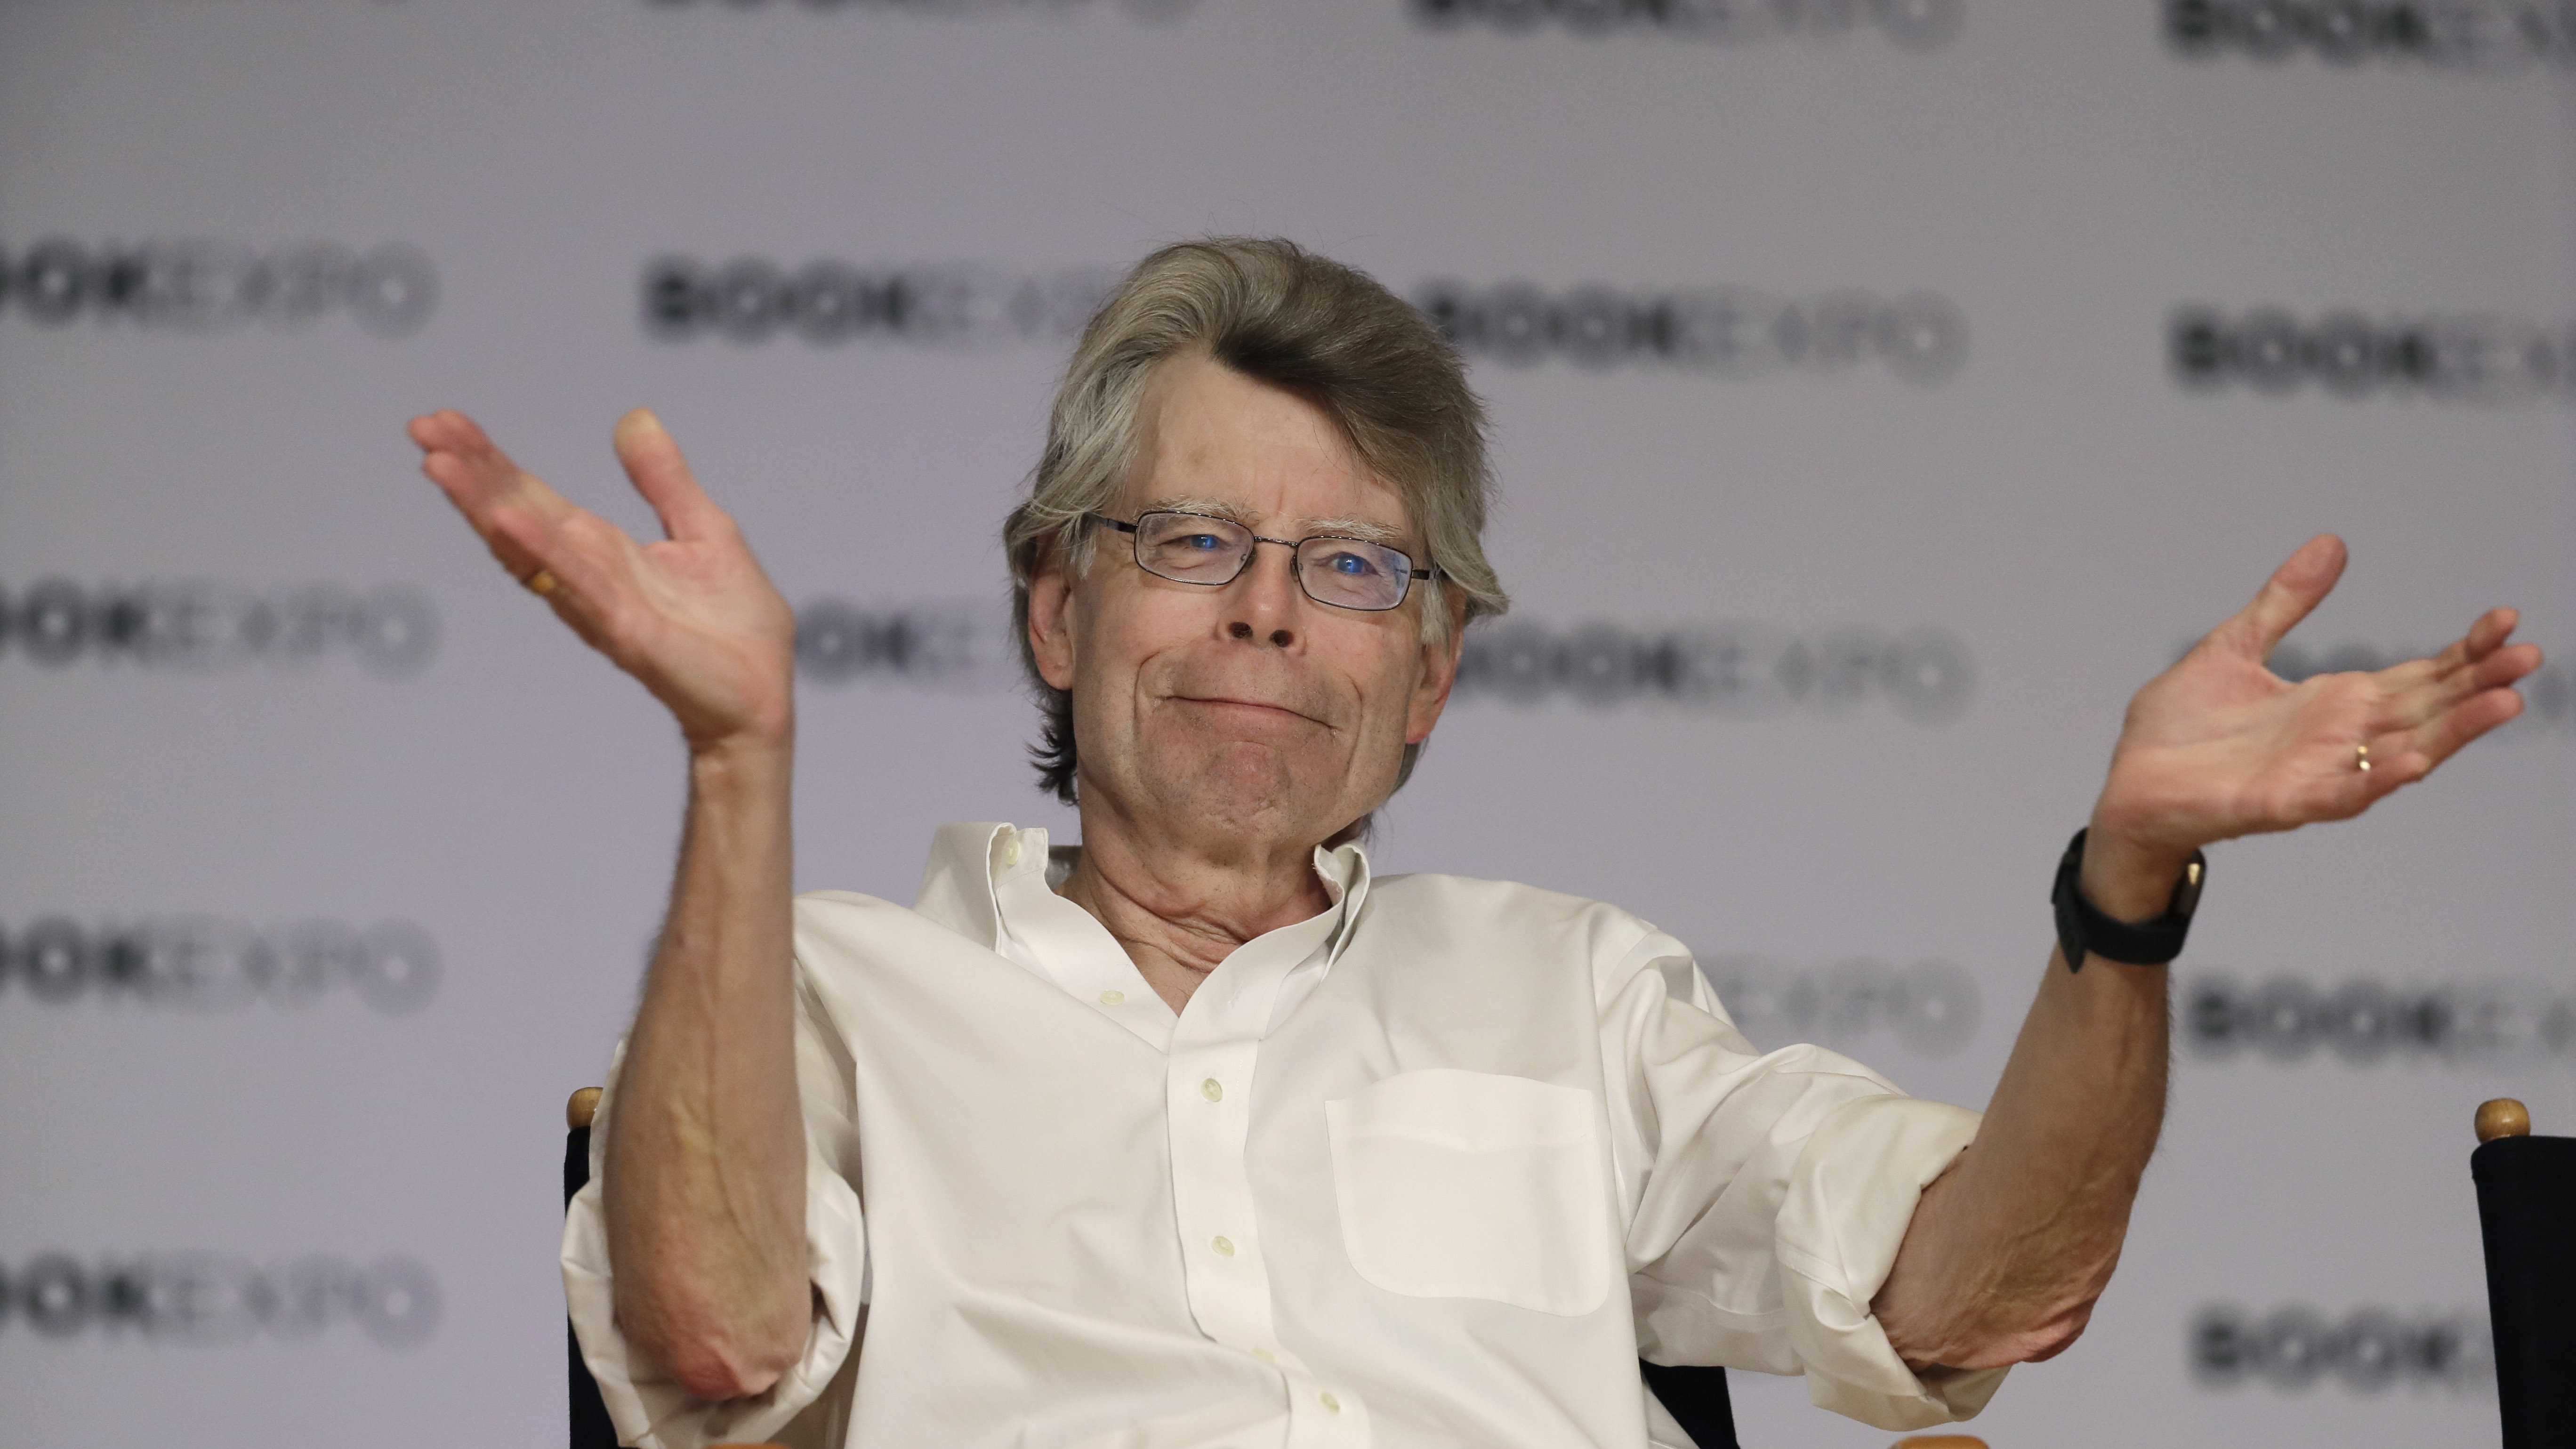 """Author Stephen King speaks at Book Expo America in New York. The house that inspired Stephen King's novel """"Pet Sematary"""" is up for sale in Maine."""